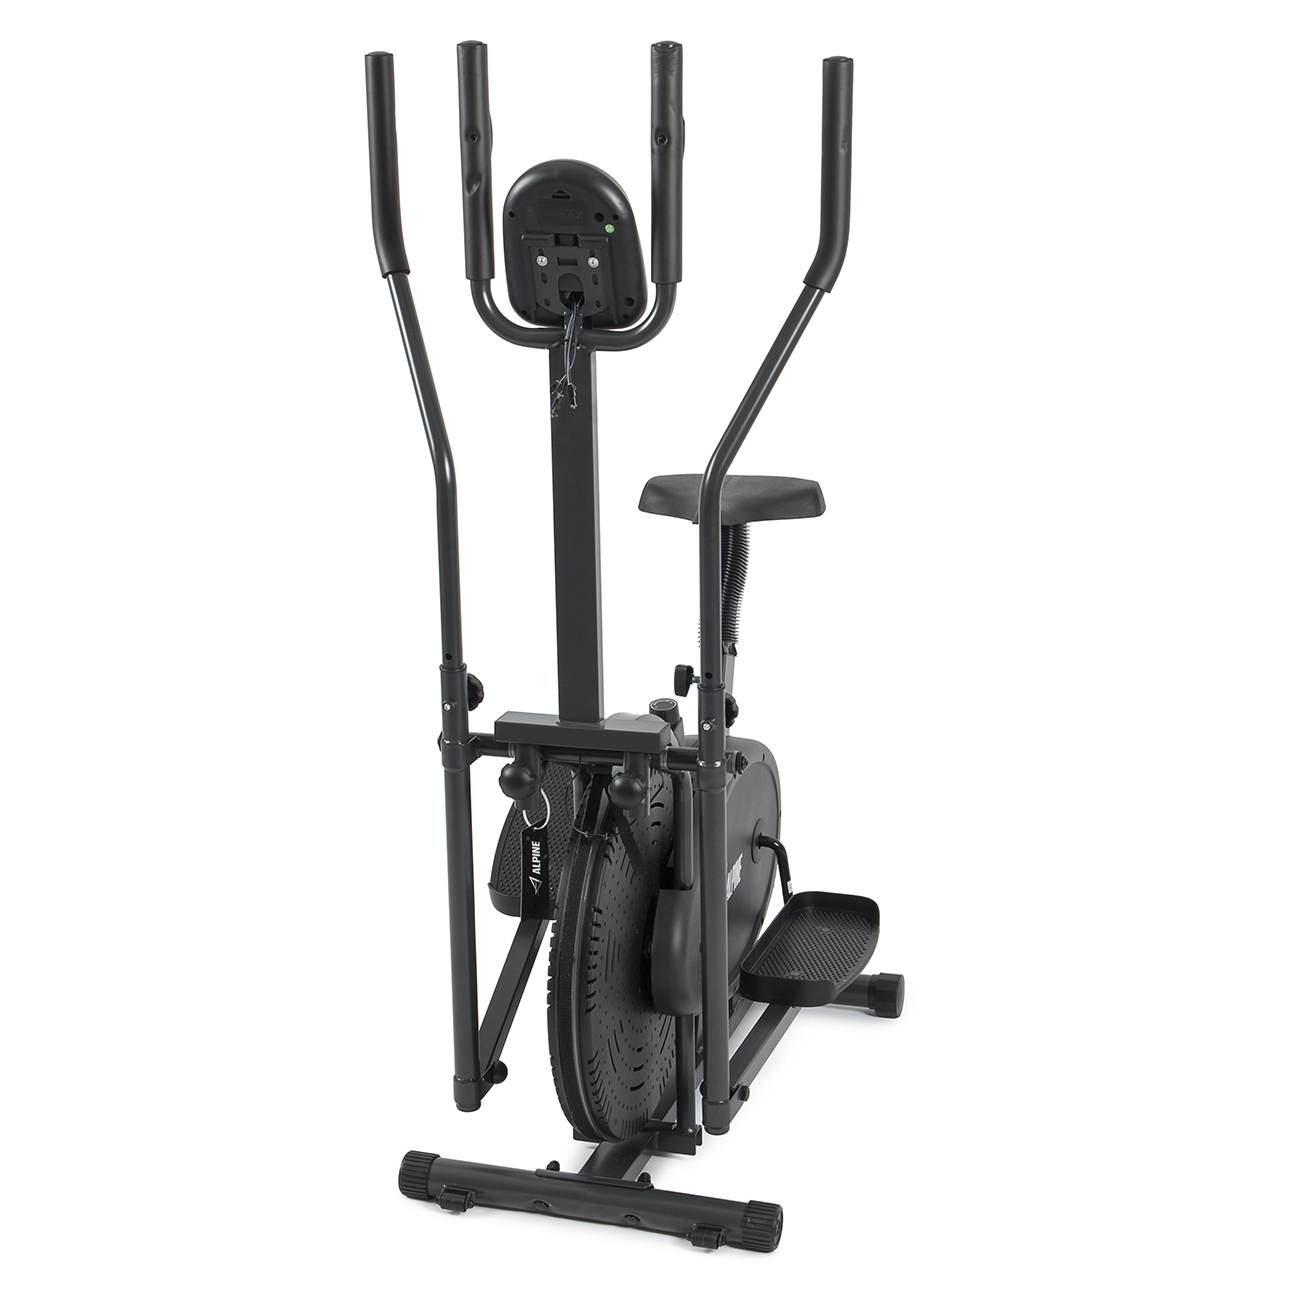 Elliptical Bike Ebay: NEW 2 IN 1 Cross Trainer Elliptical Bike Exercise Fitness